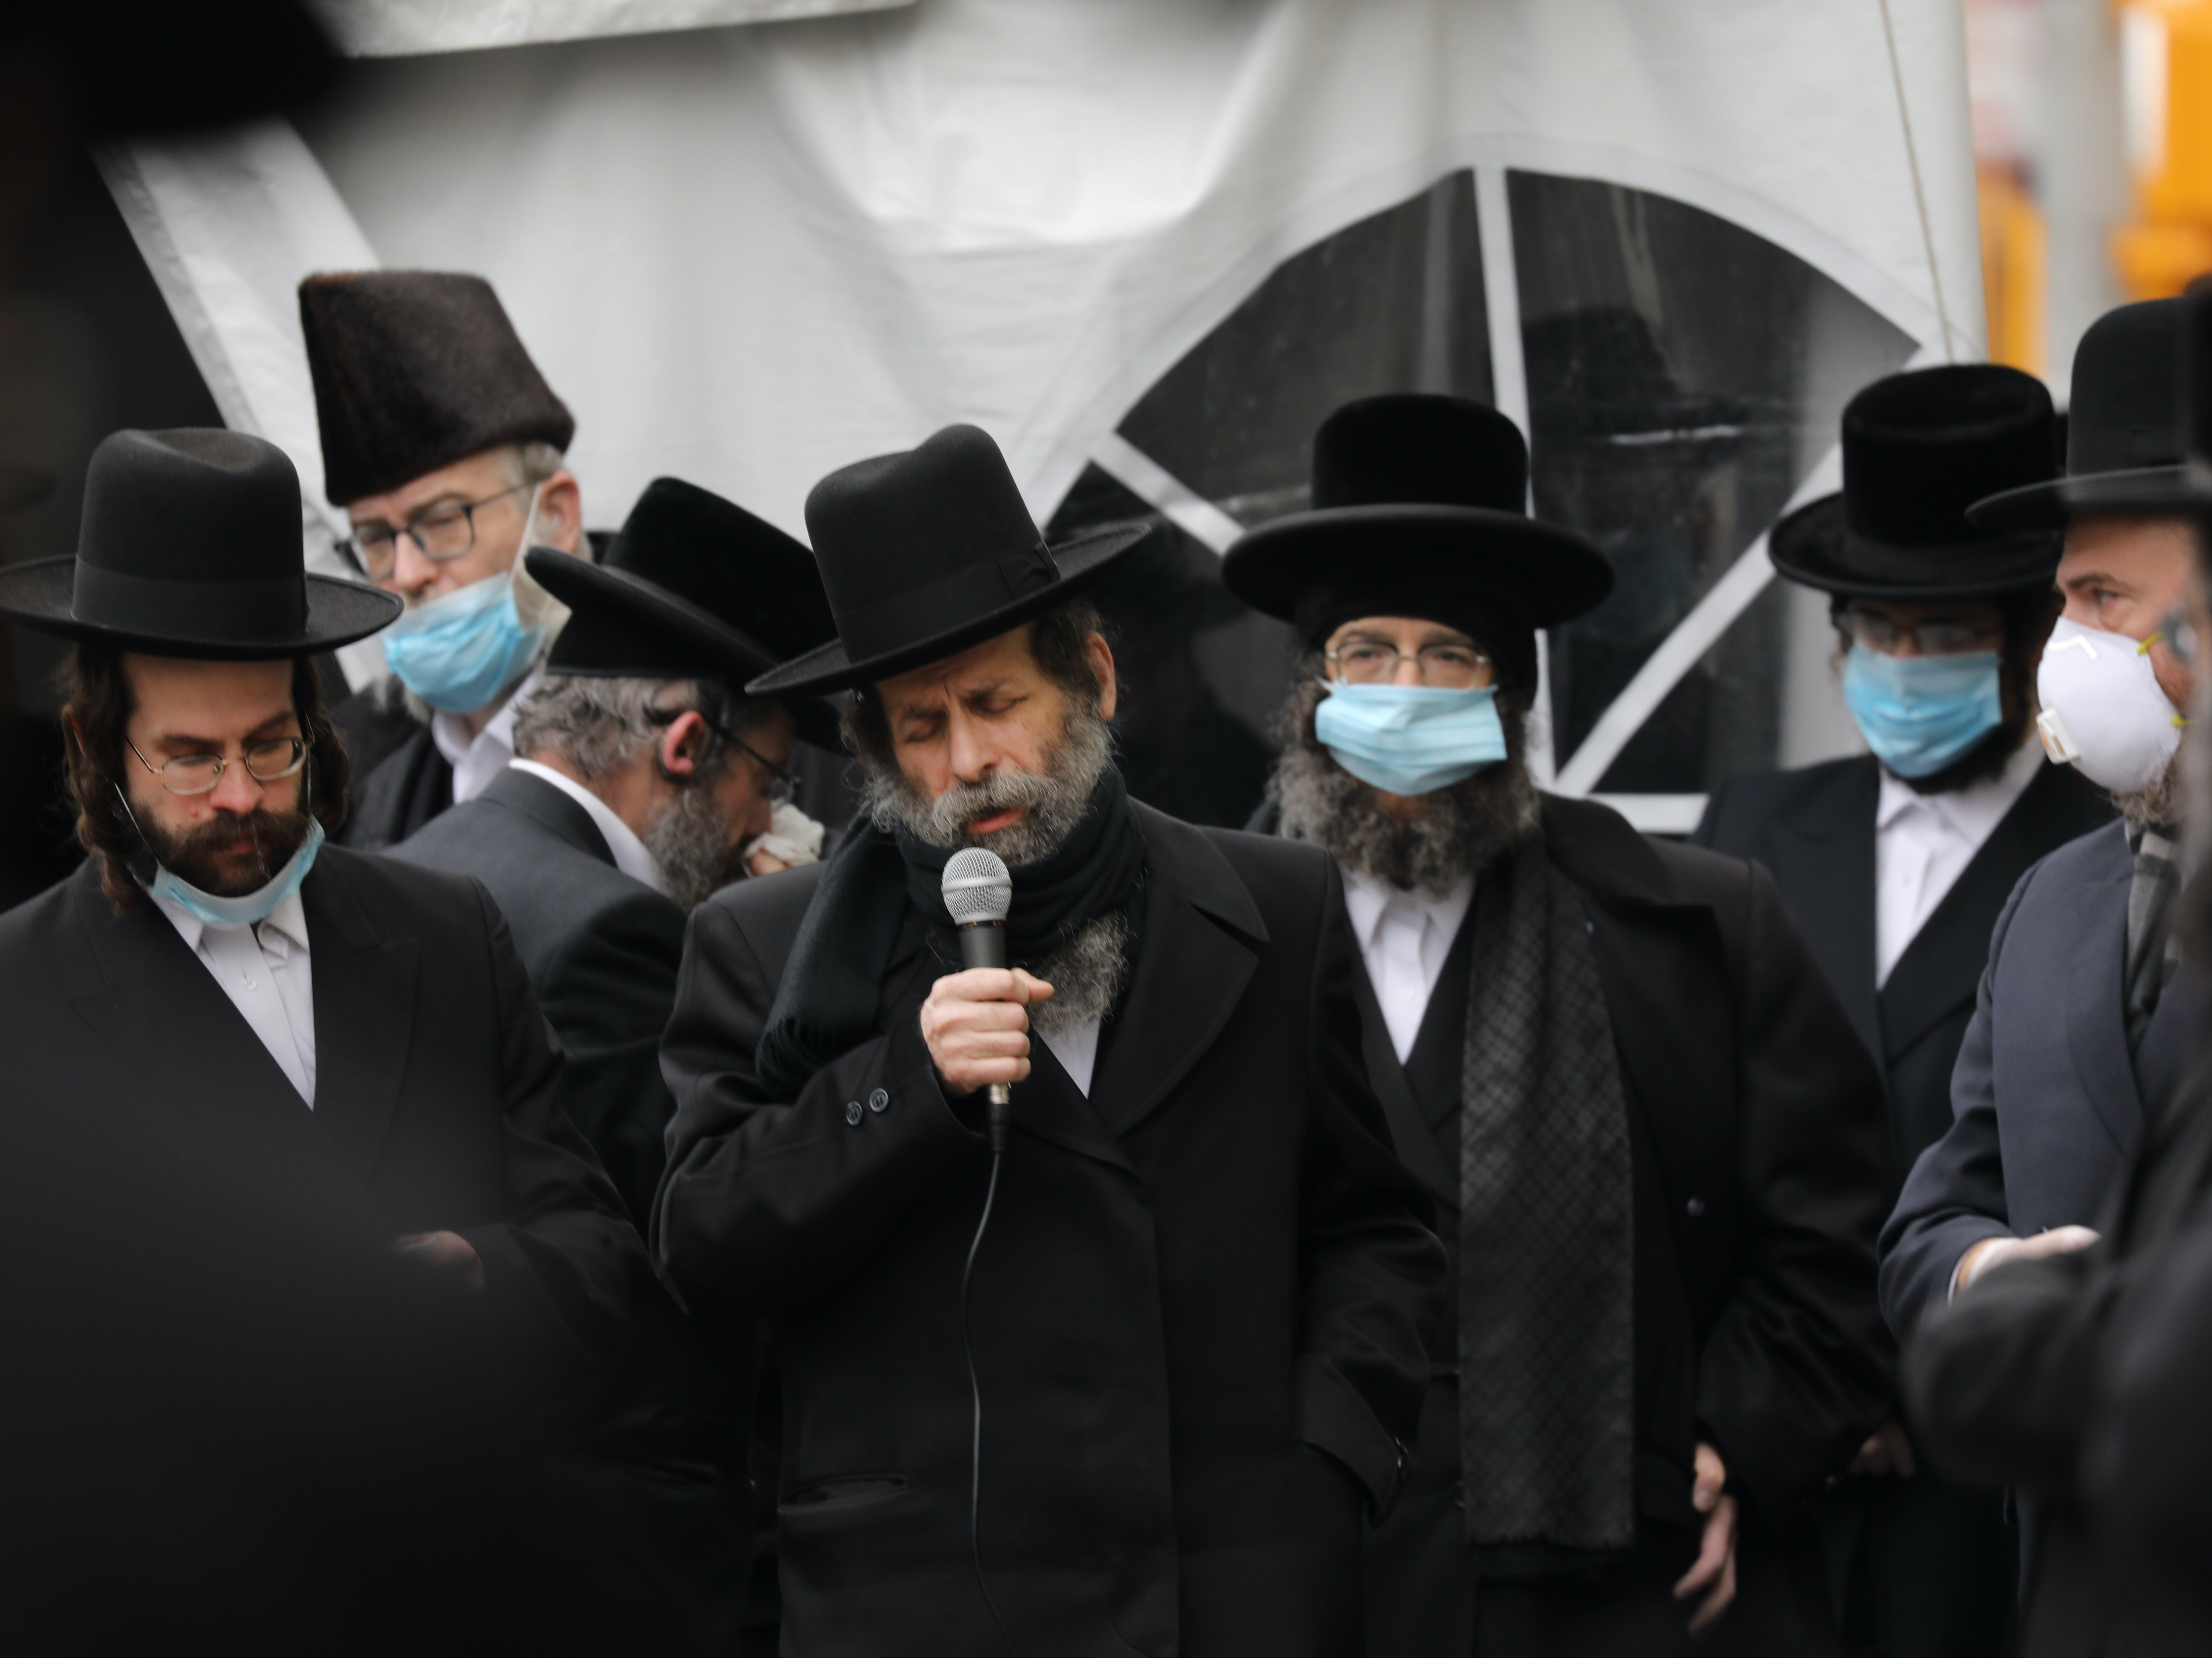 Europe's Jewish population drops by 60%, study finds